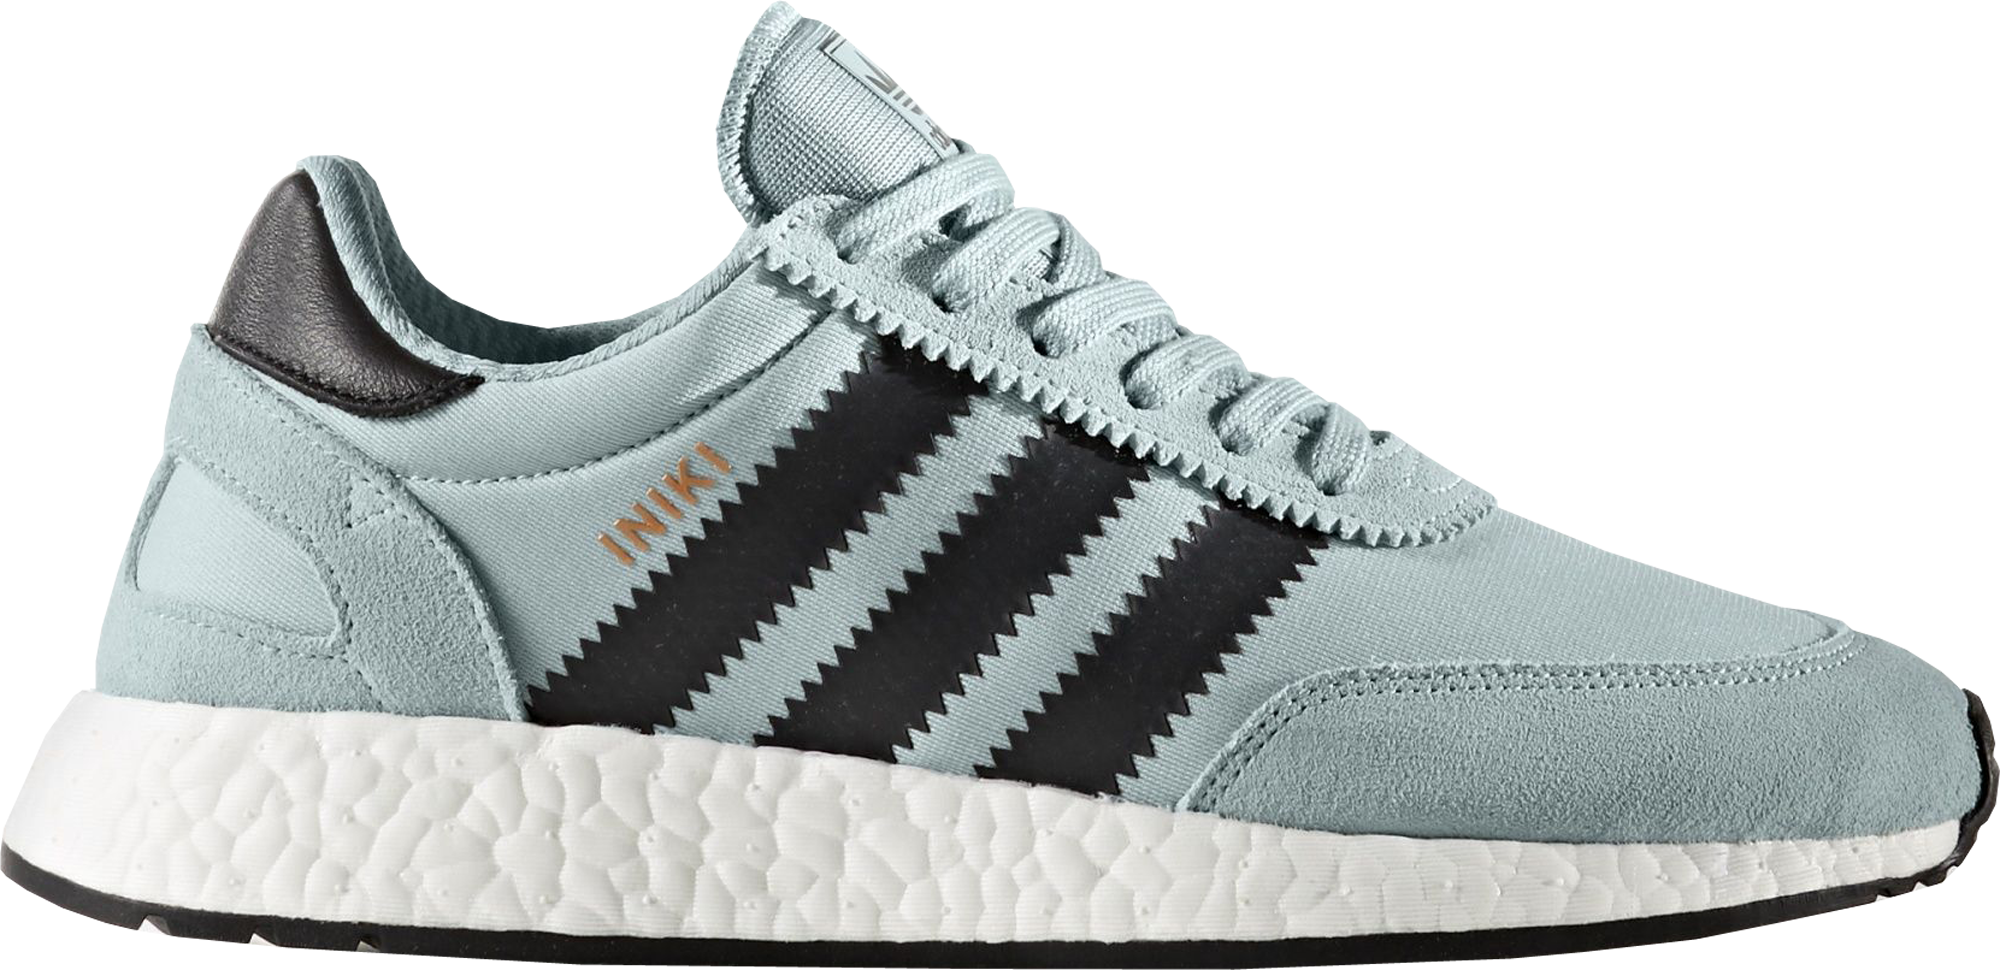 adidas Iniki Runner Tactile Green (W)